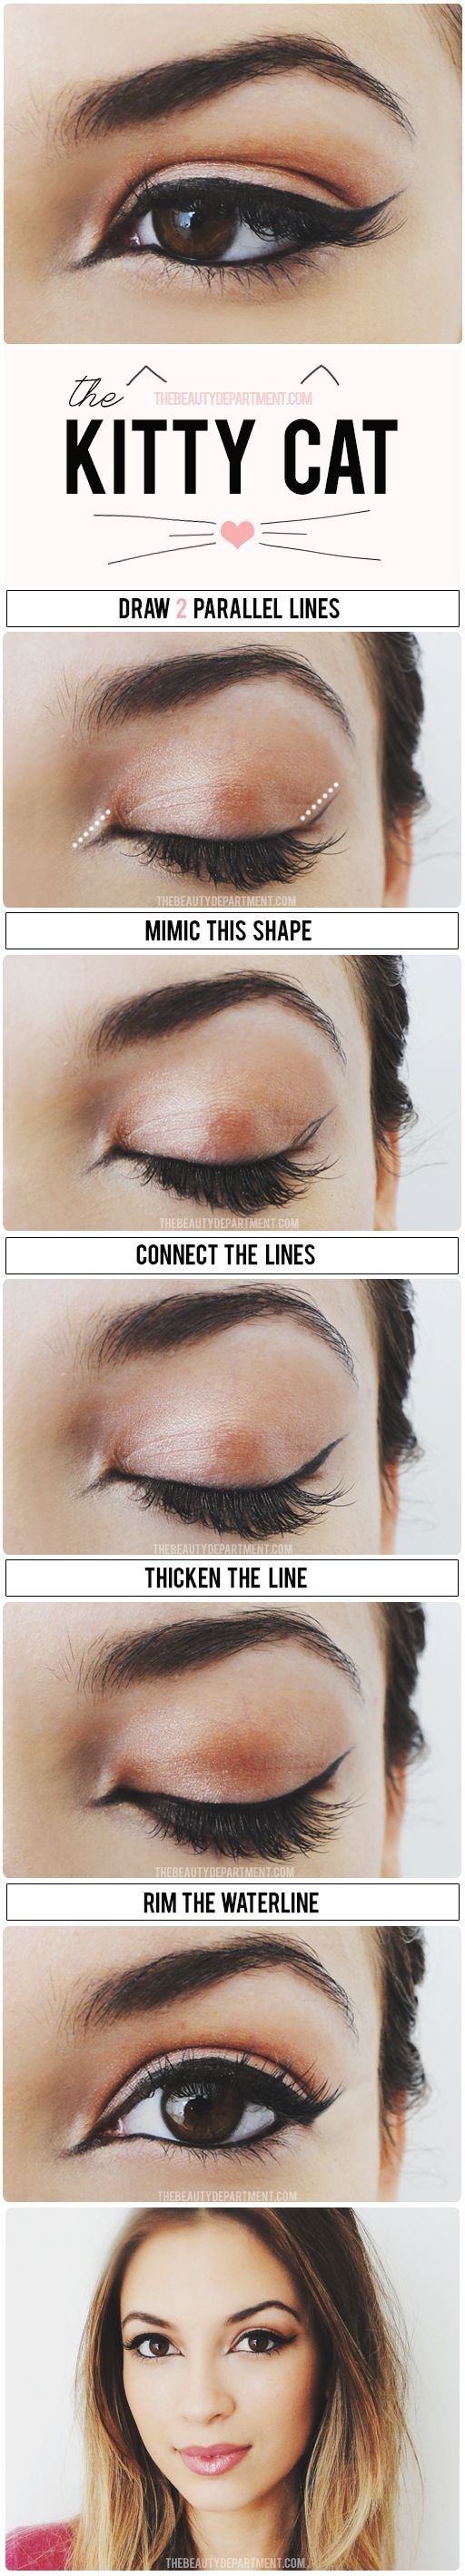 thebeautydepartment.com-kitty-cat-eye.jpg 512×2.838 pixelsMakeup Tutorials, Kitty Cats, Eyeliner, Cat Eyes, Cateye, Eye Tutorial, Cat Eye Makeup, Eye Makeup Tutorial, Eye Liner